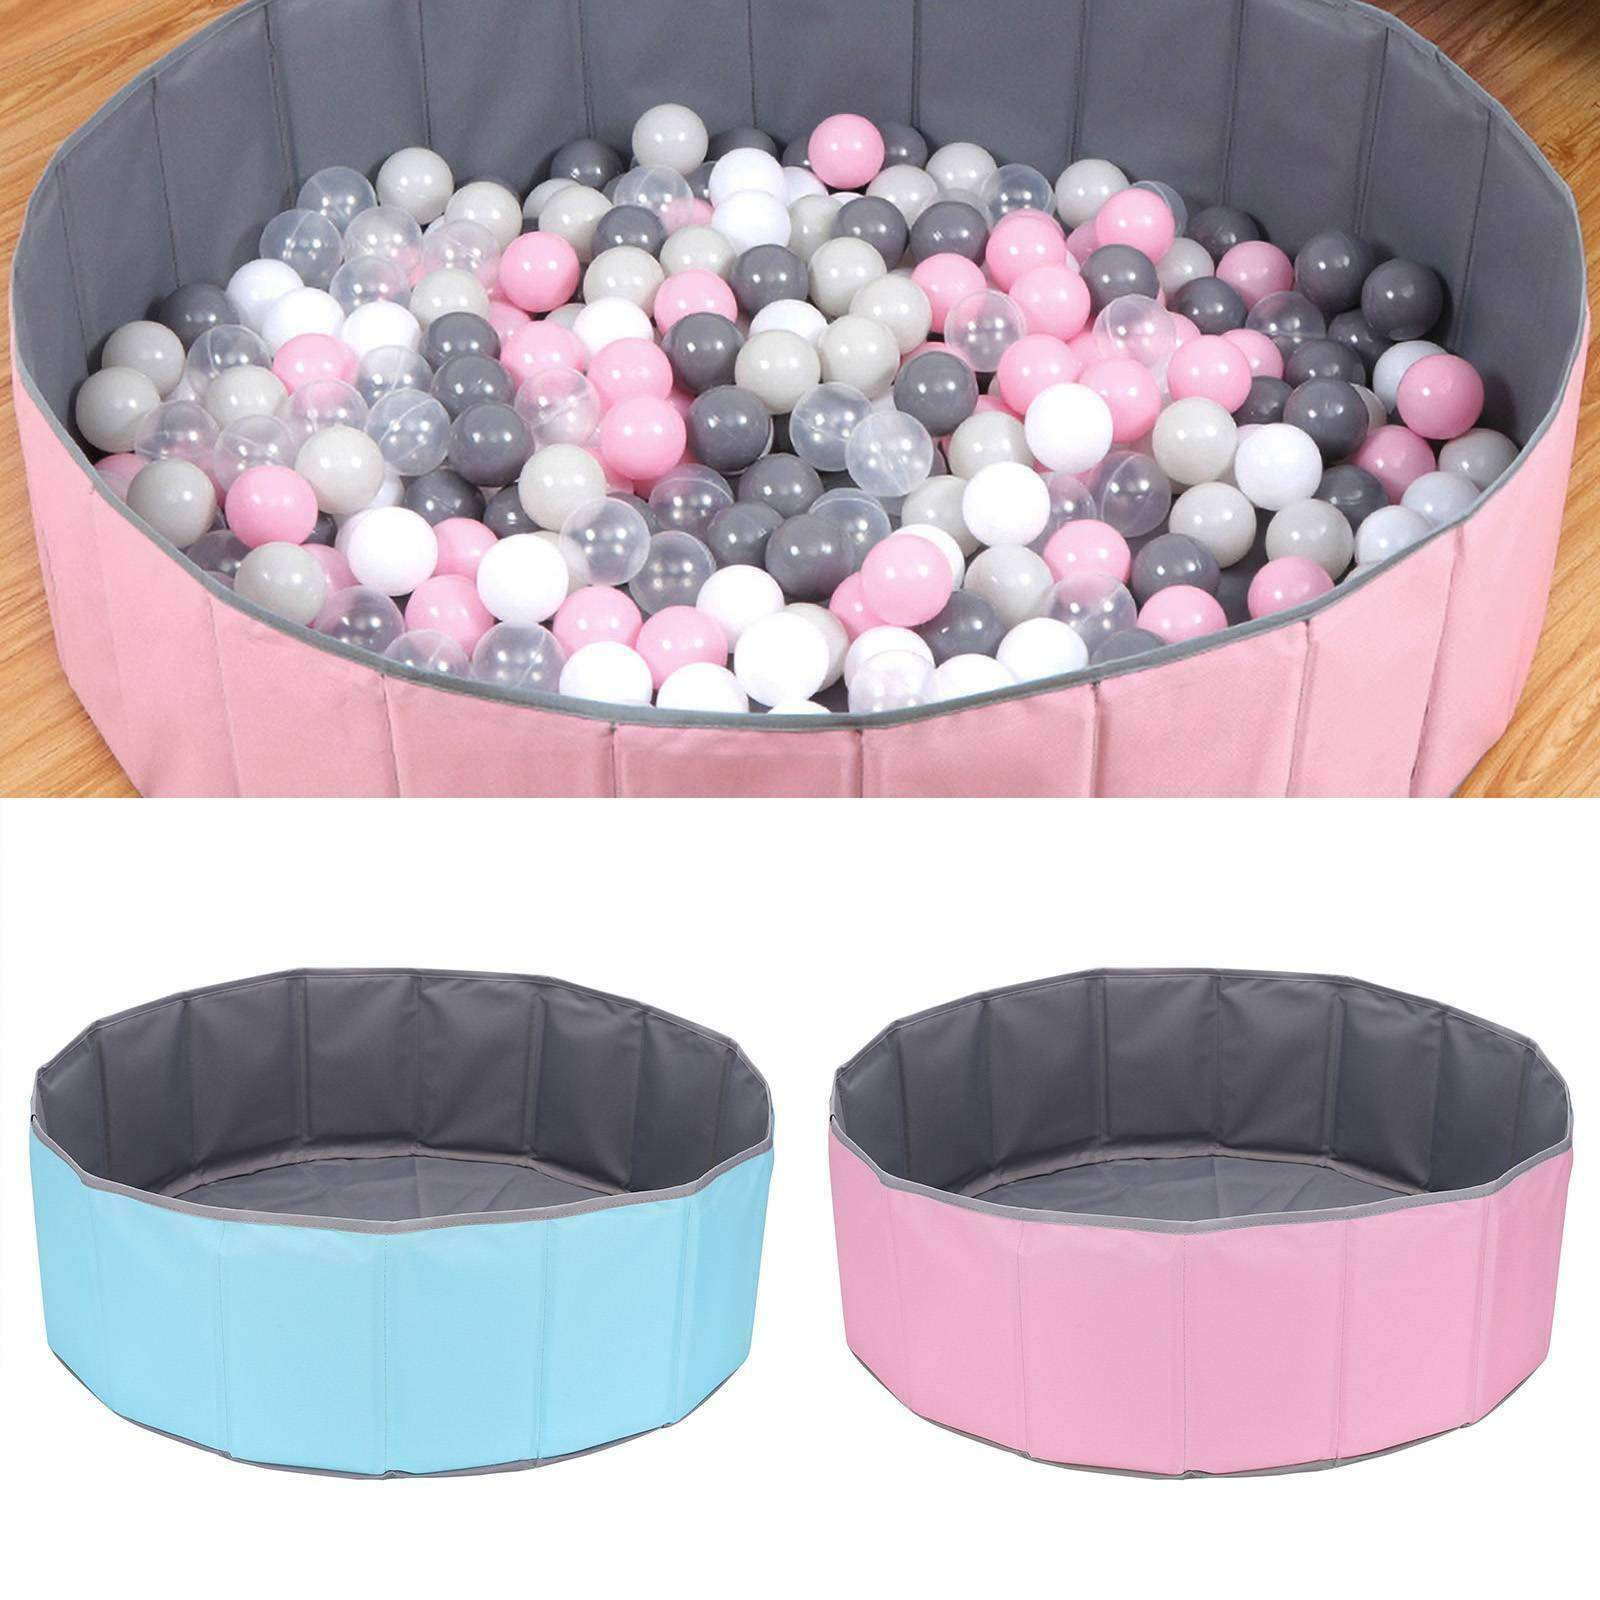 Kids Game Play Toy Tent Ocean Ball Pit Pool Children Baby Indoor Easy Foldable - Balls Not Included